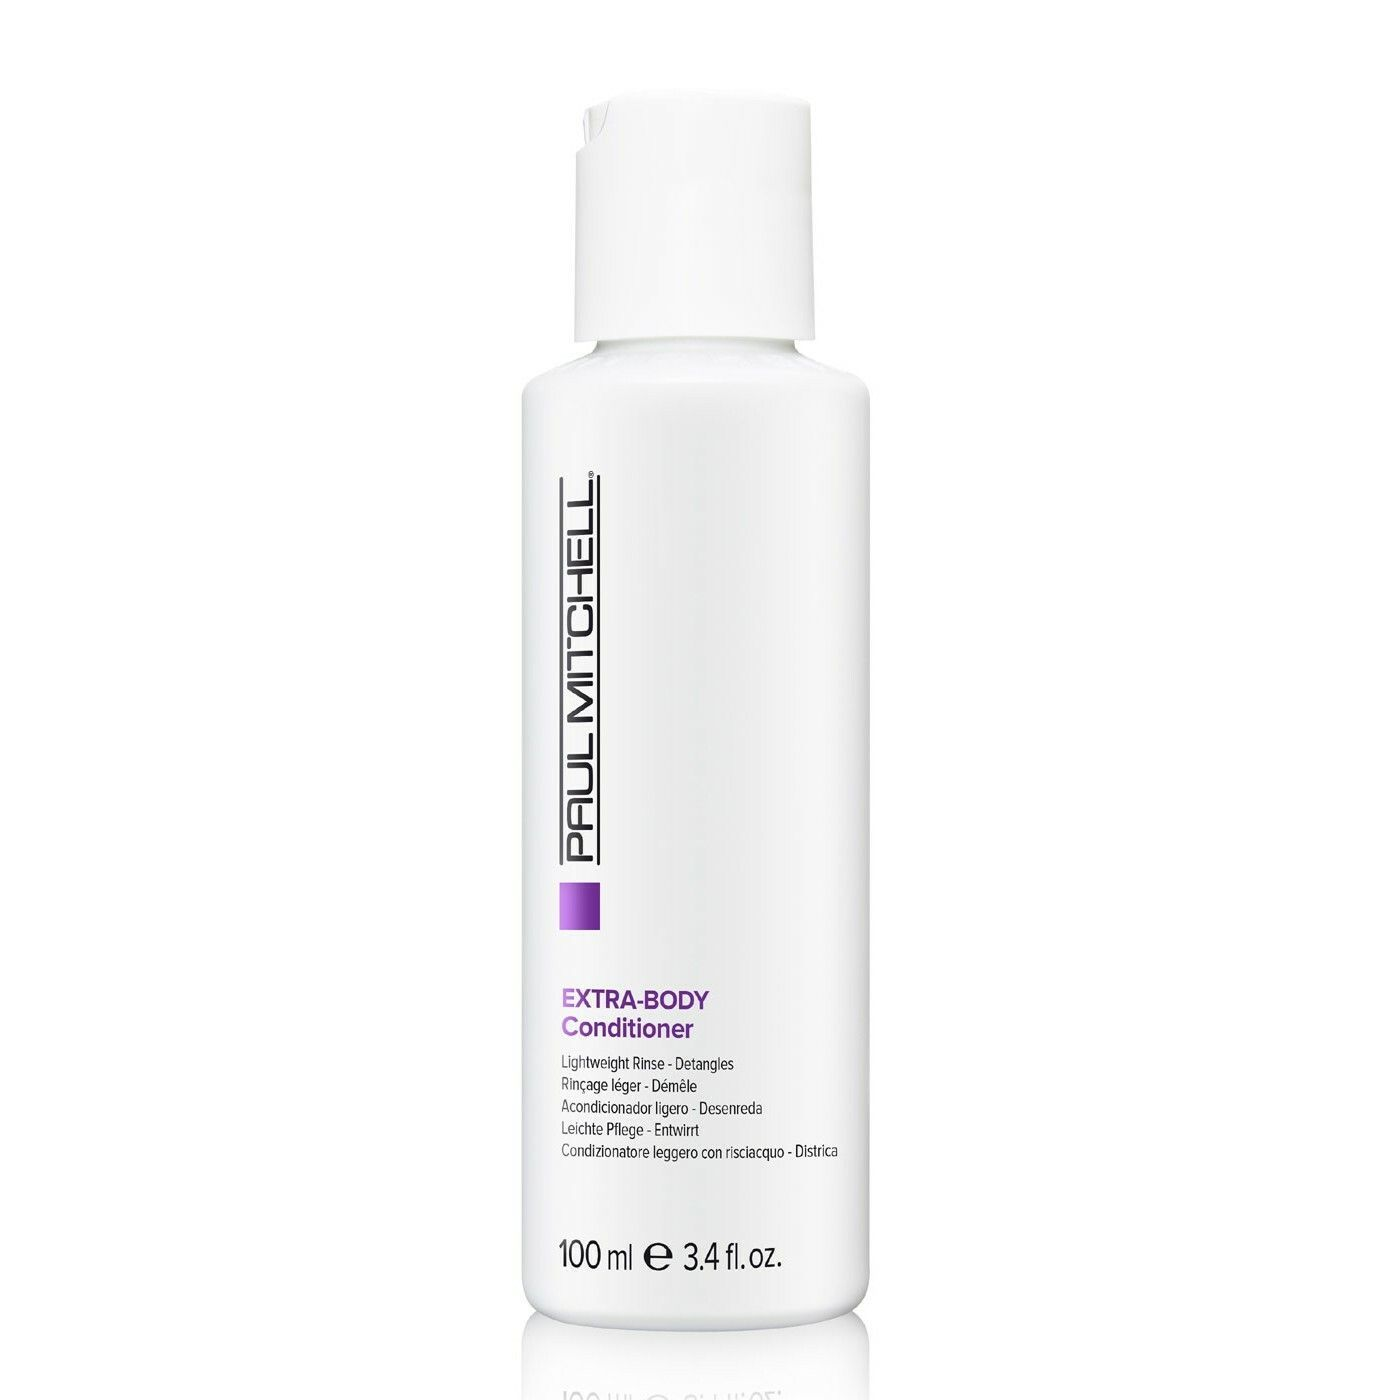 Paul Mitchell Extra-body Daily Conditioner - 100ml